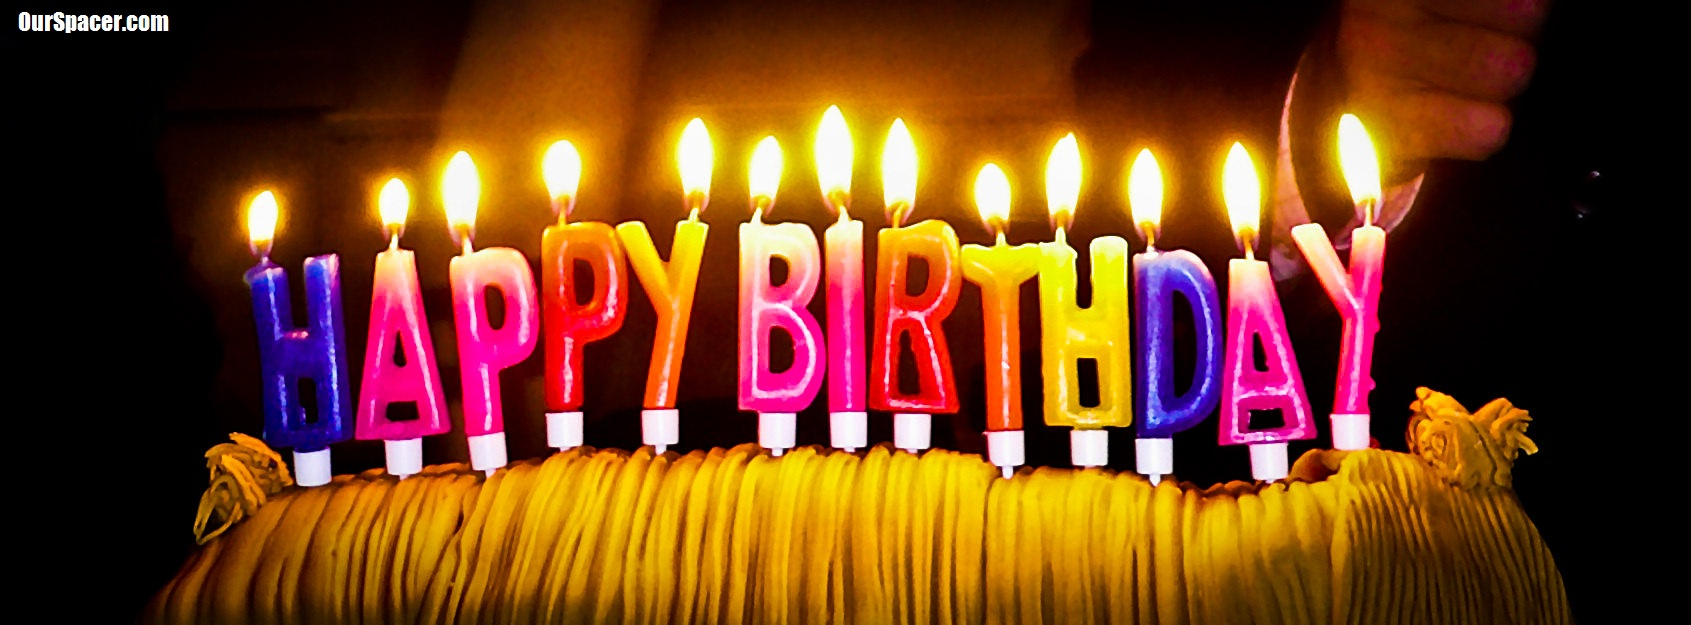 happy birthday graphics for facebook ; happy-birthday-letter-candles